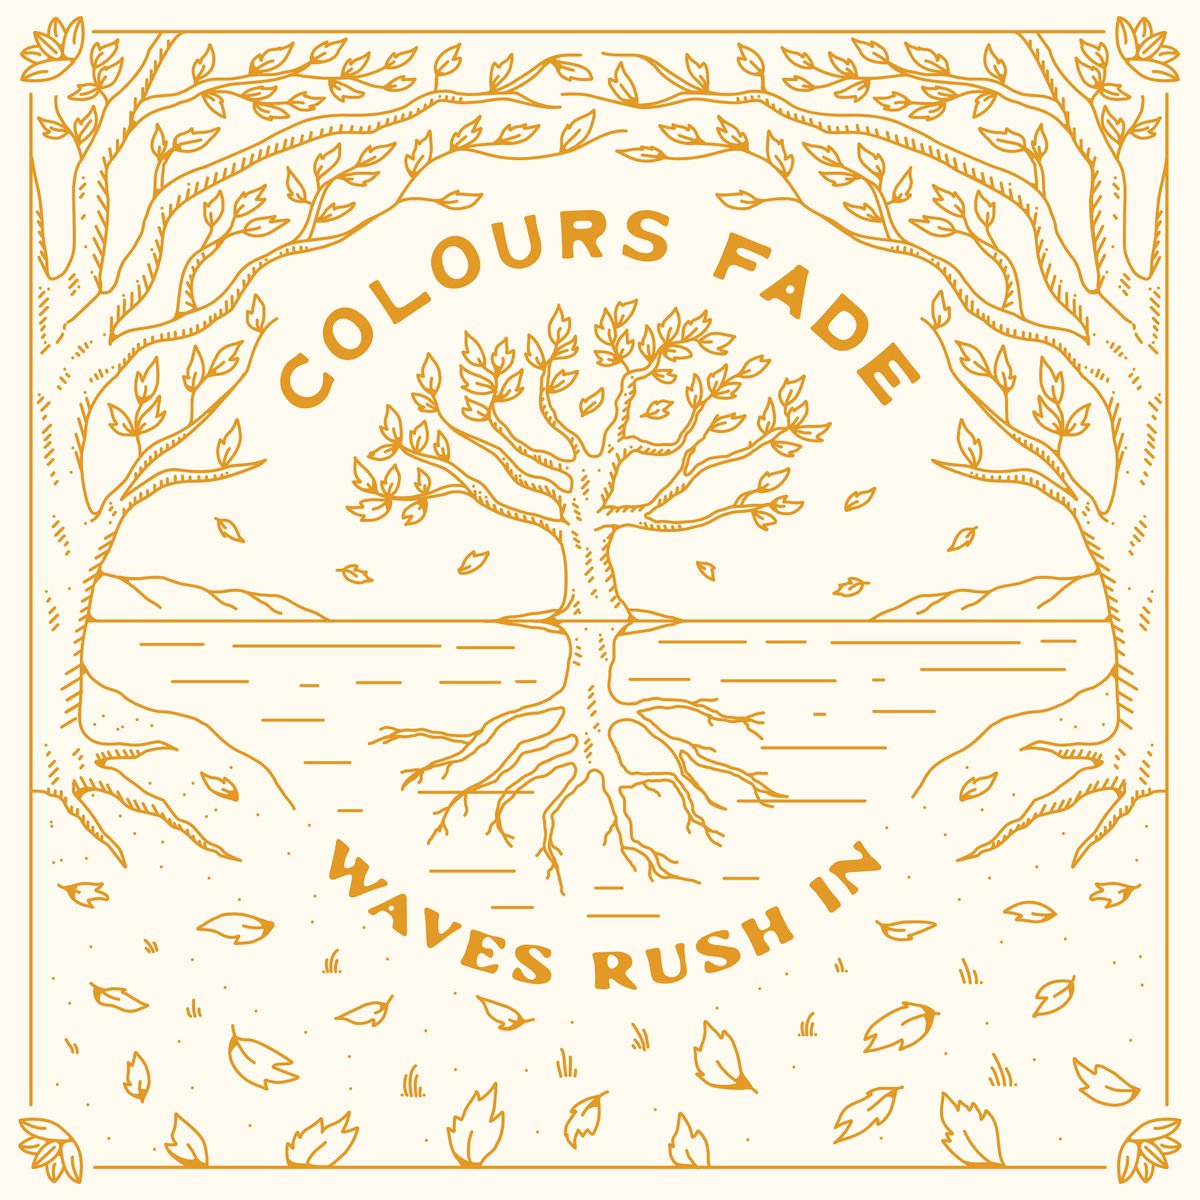 Debut single 'Colours Fade' out now. See link in bio. #coloursfade #wavesrushin